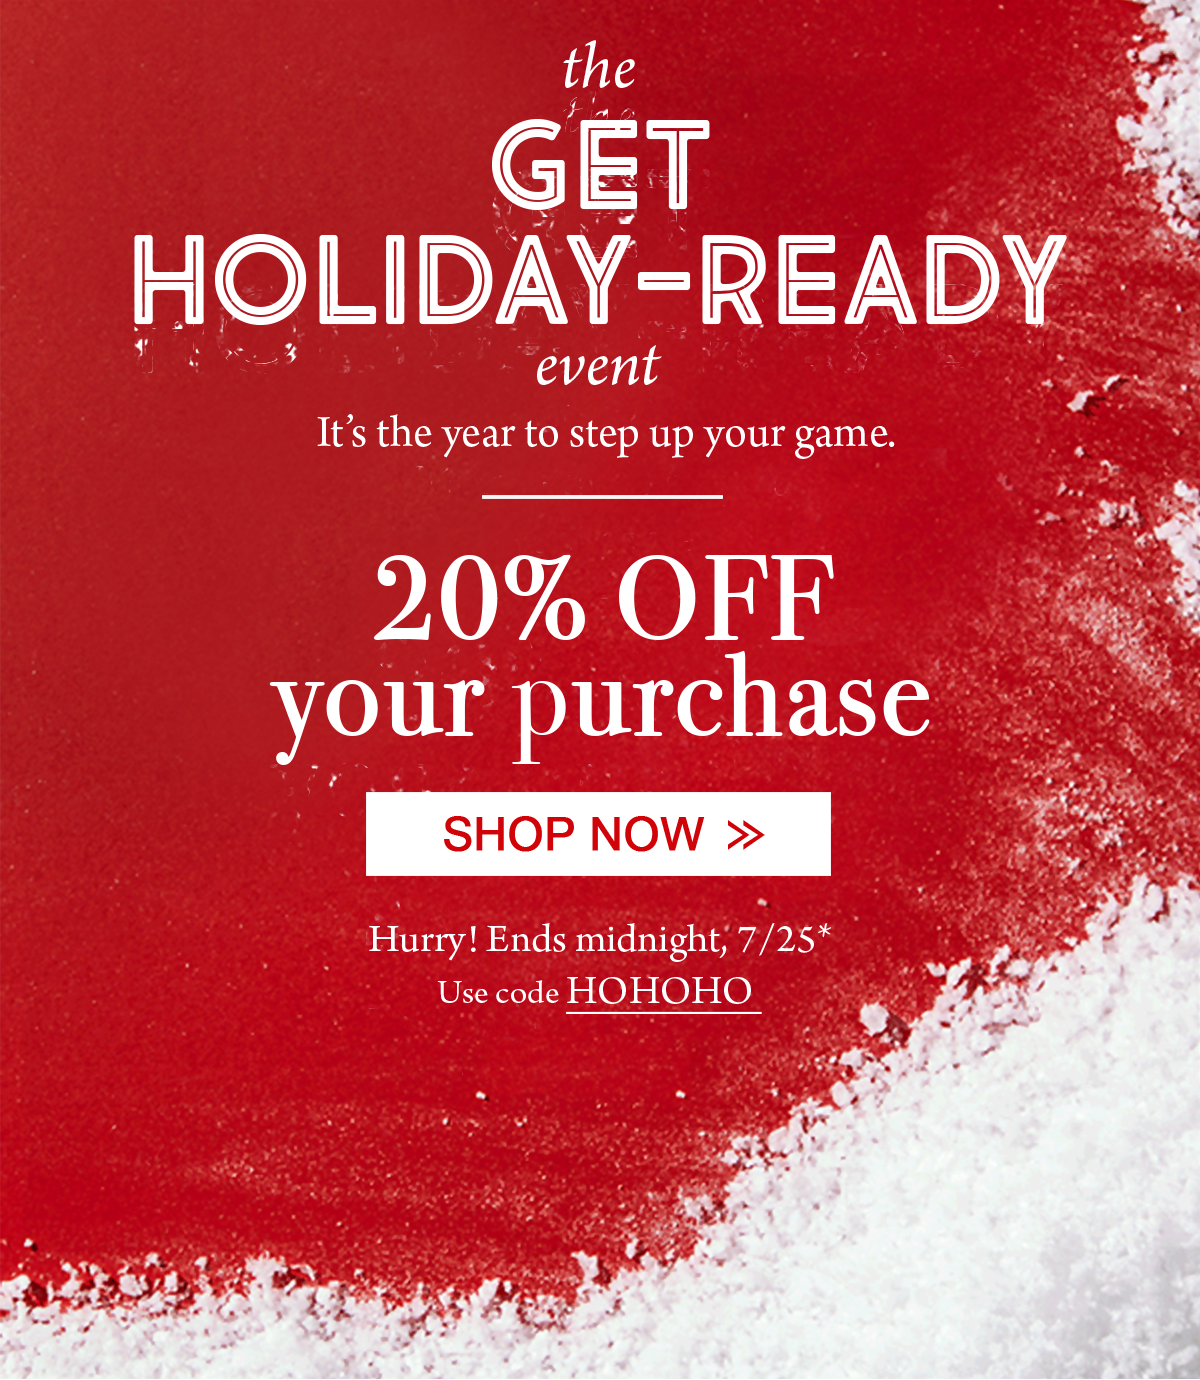 The Get Holiday-Ready Event It's the year to step up your game. 20% off your purchase Shop Now Hurry! Ends midnight, 7/25* Use code HOHOHO